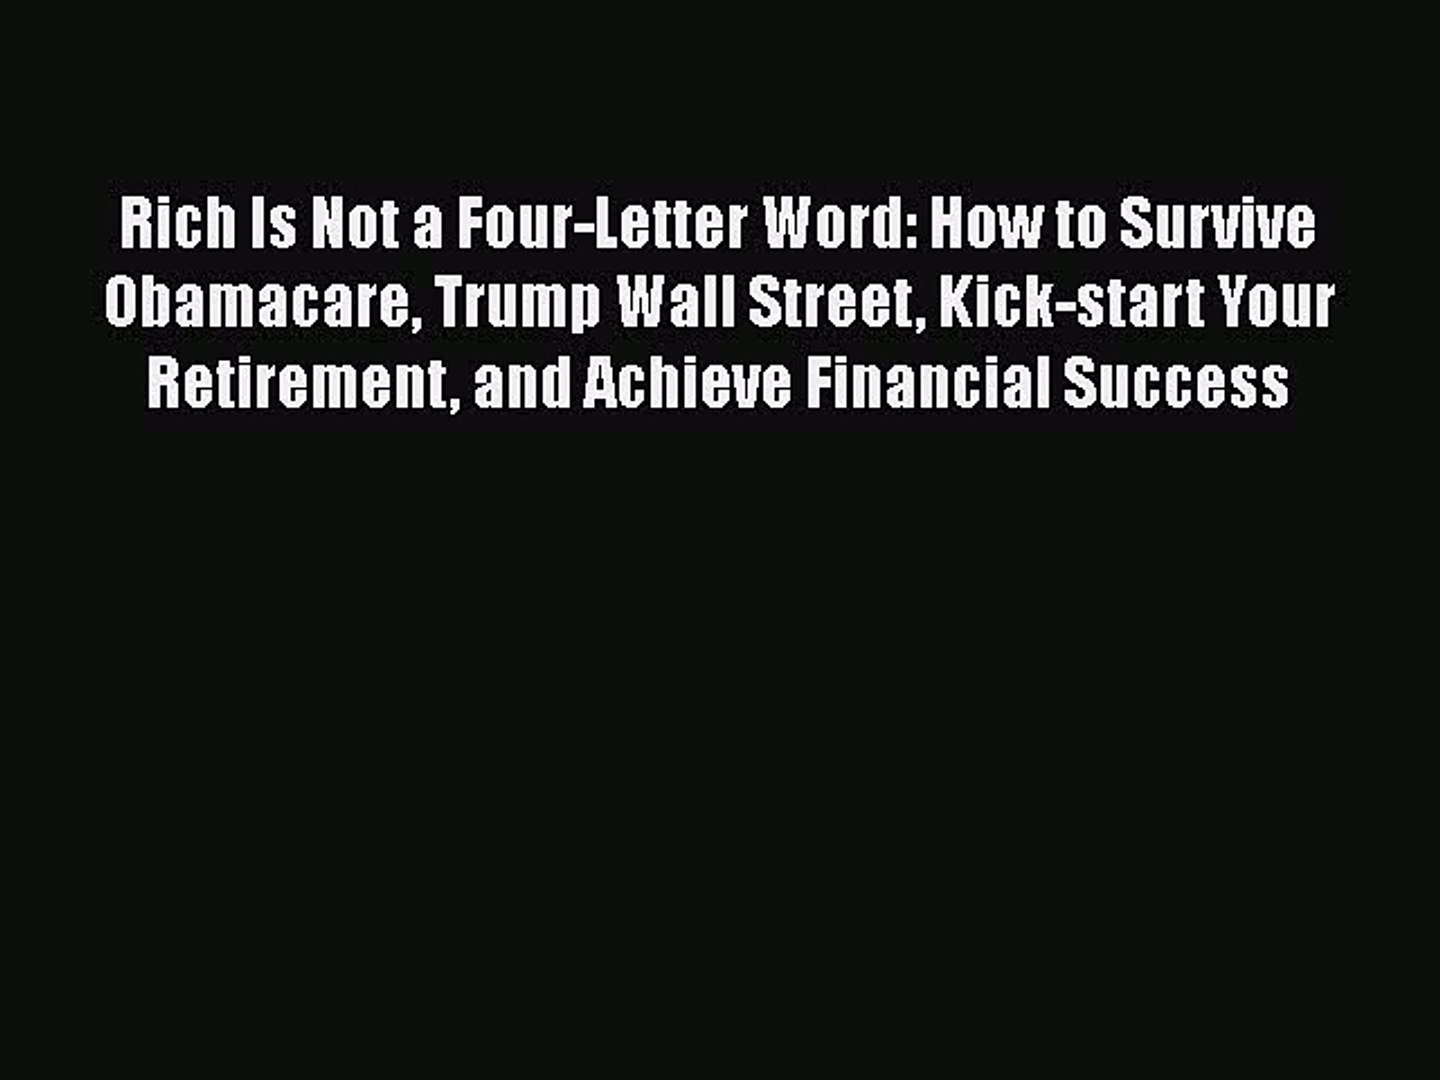 [Read Book] Rich Is Not a Four-Letter Word: How to Survive Obamacare Trump Wall Street Kick-start